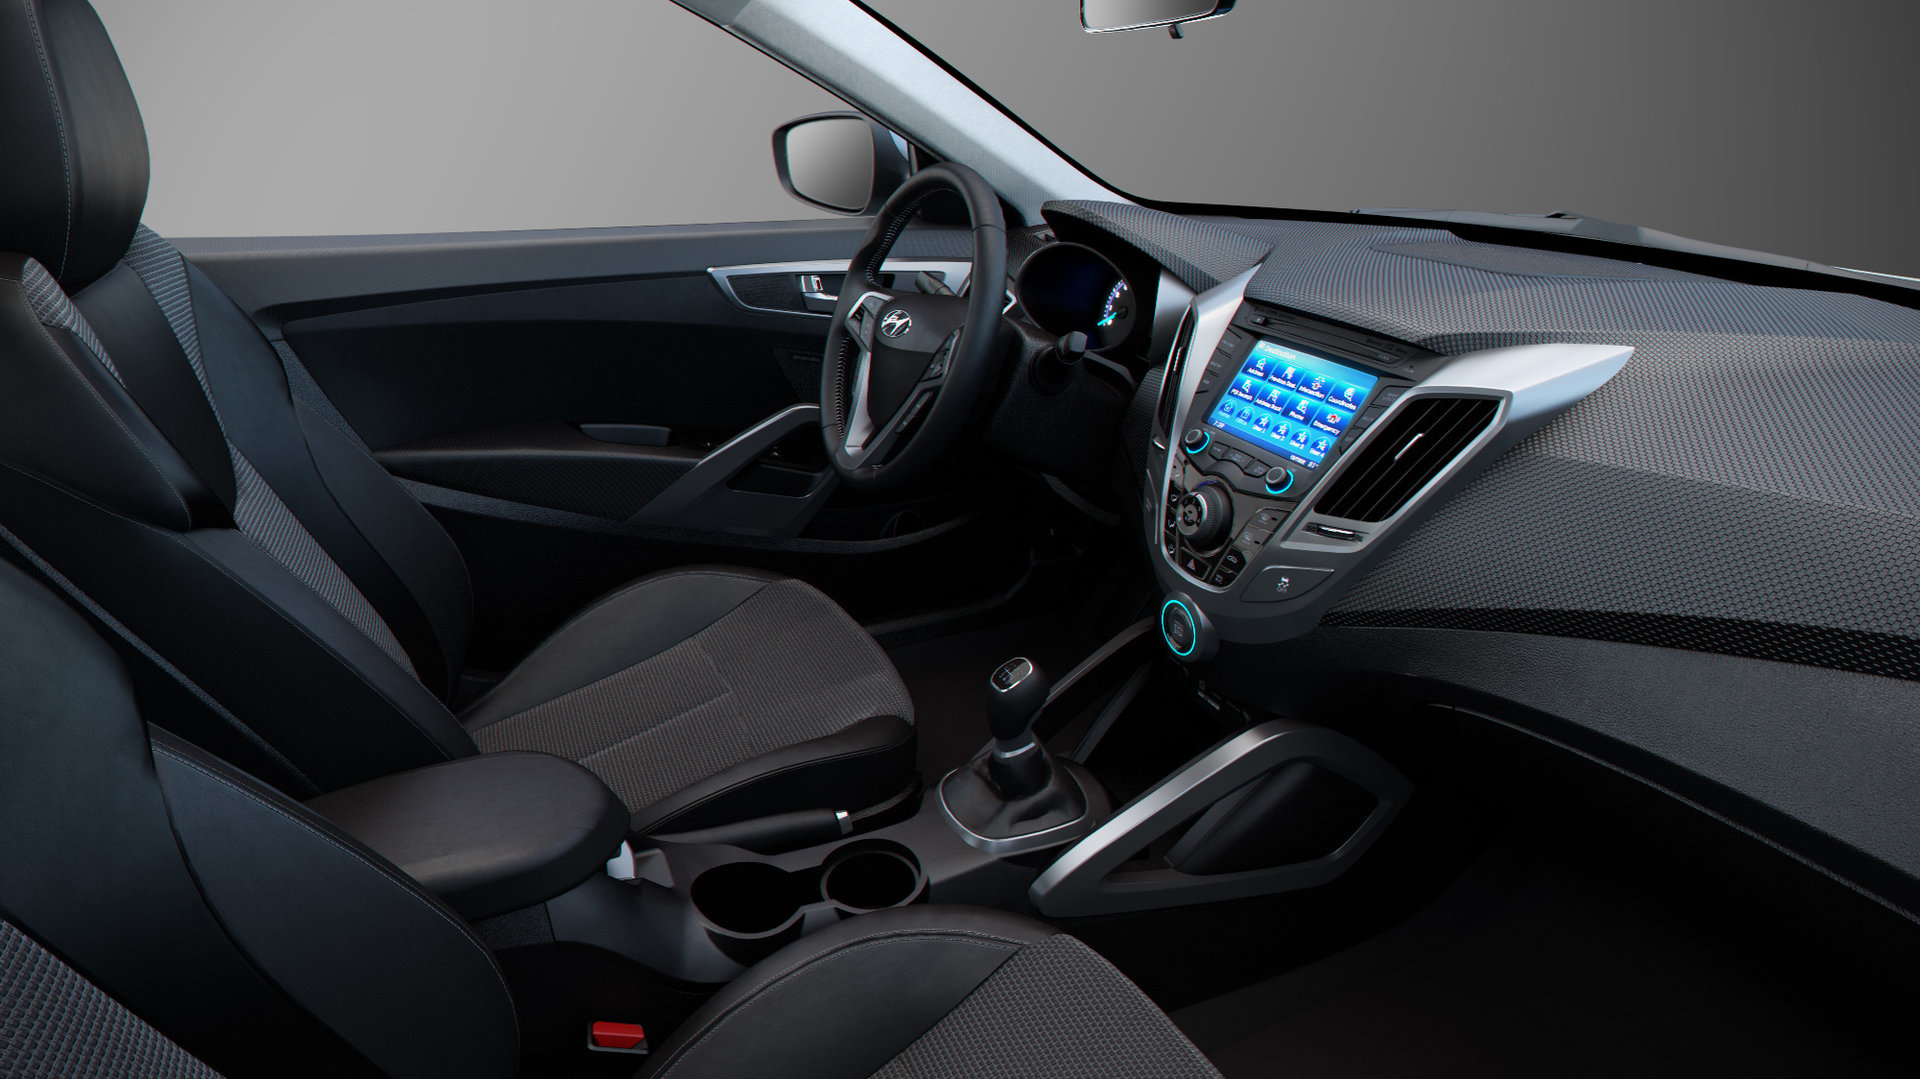 Visualization Of A Hyundai Veloster Interior